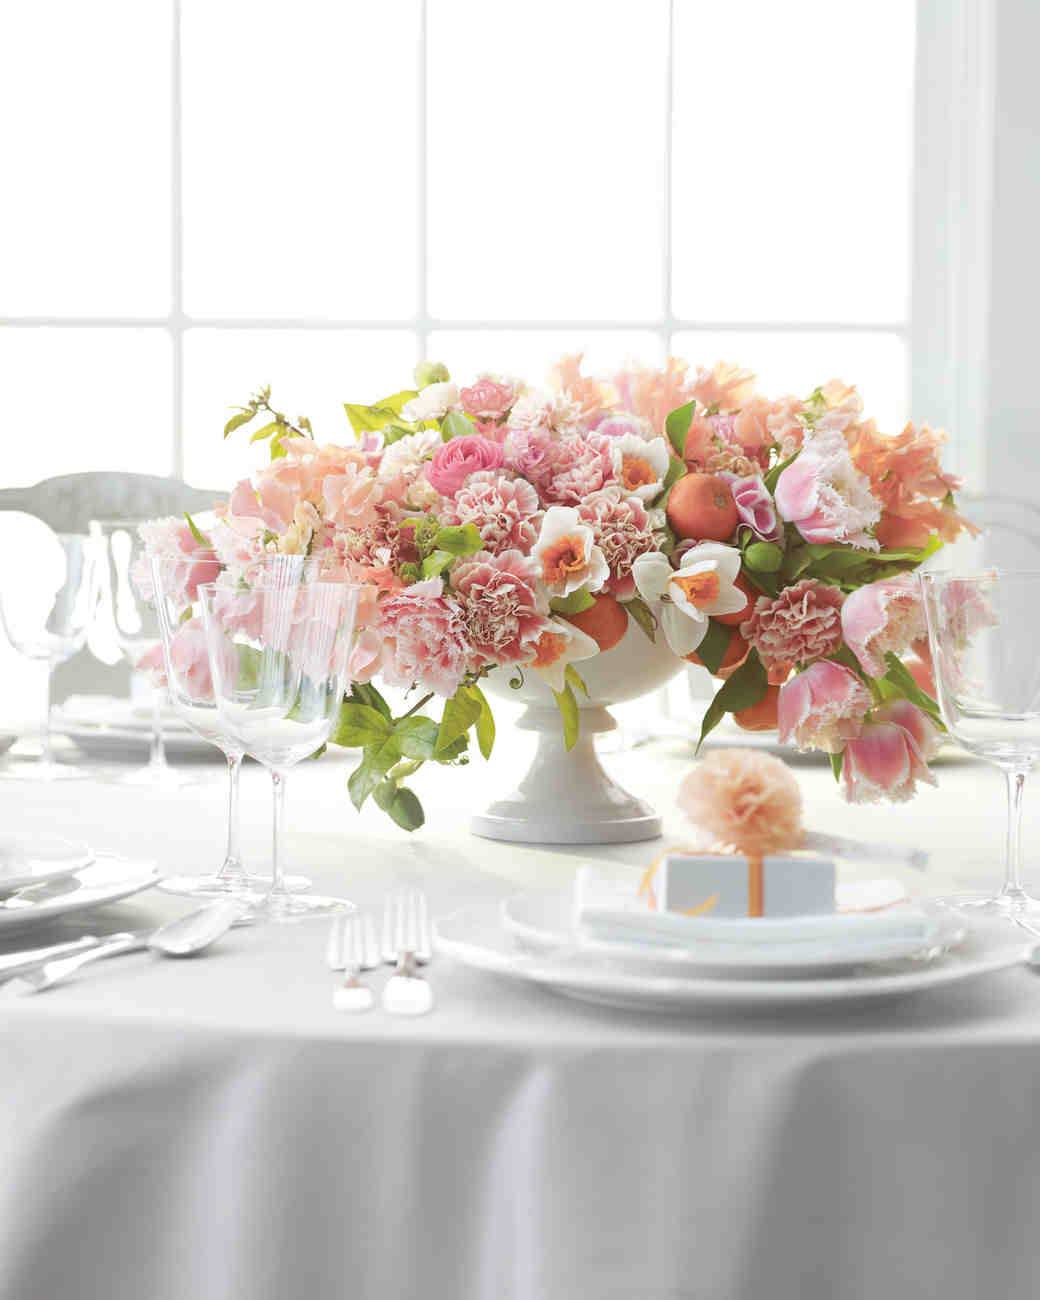 Carnation Wedding Centerpiece